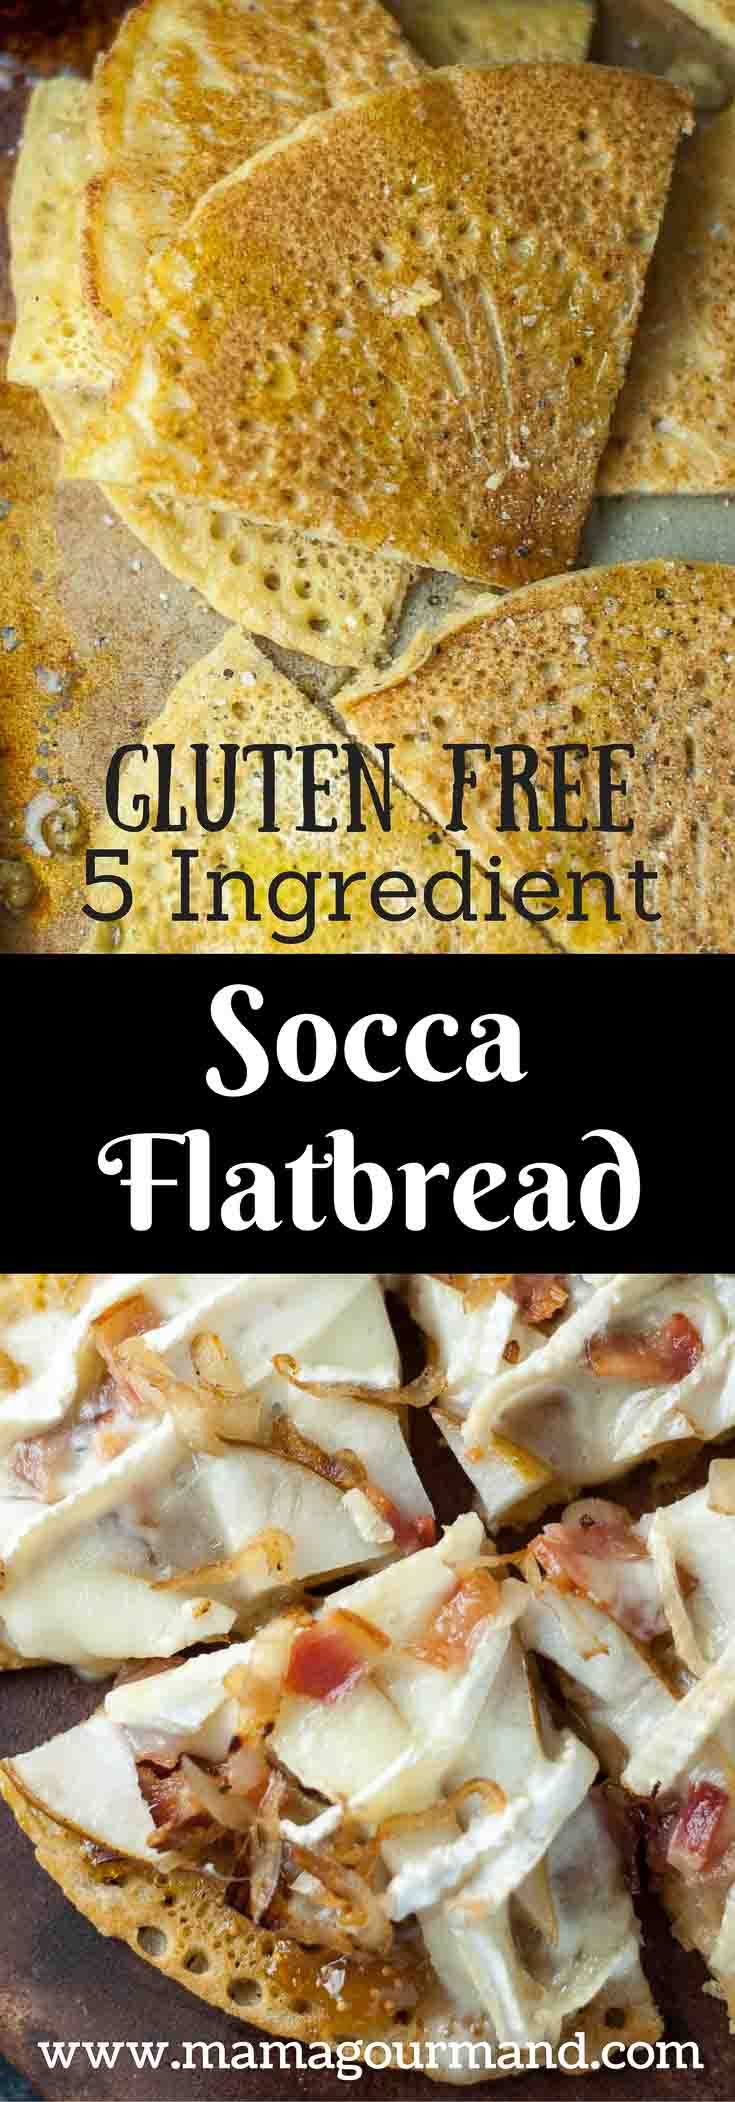 Socca chickpea flatbread is a naturally gluten free, vegan bread recipe that can be used for a great tasting gluten free pizza crust. https://www.mamagourmand.com